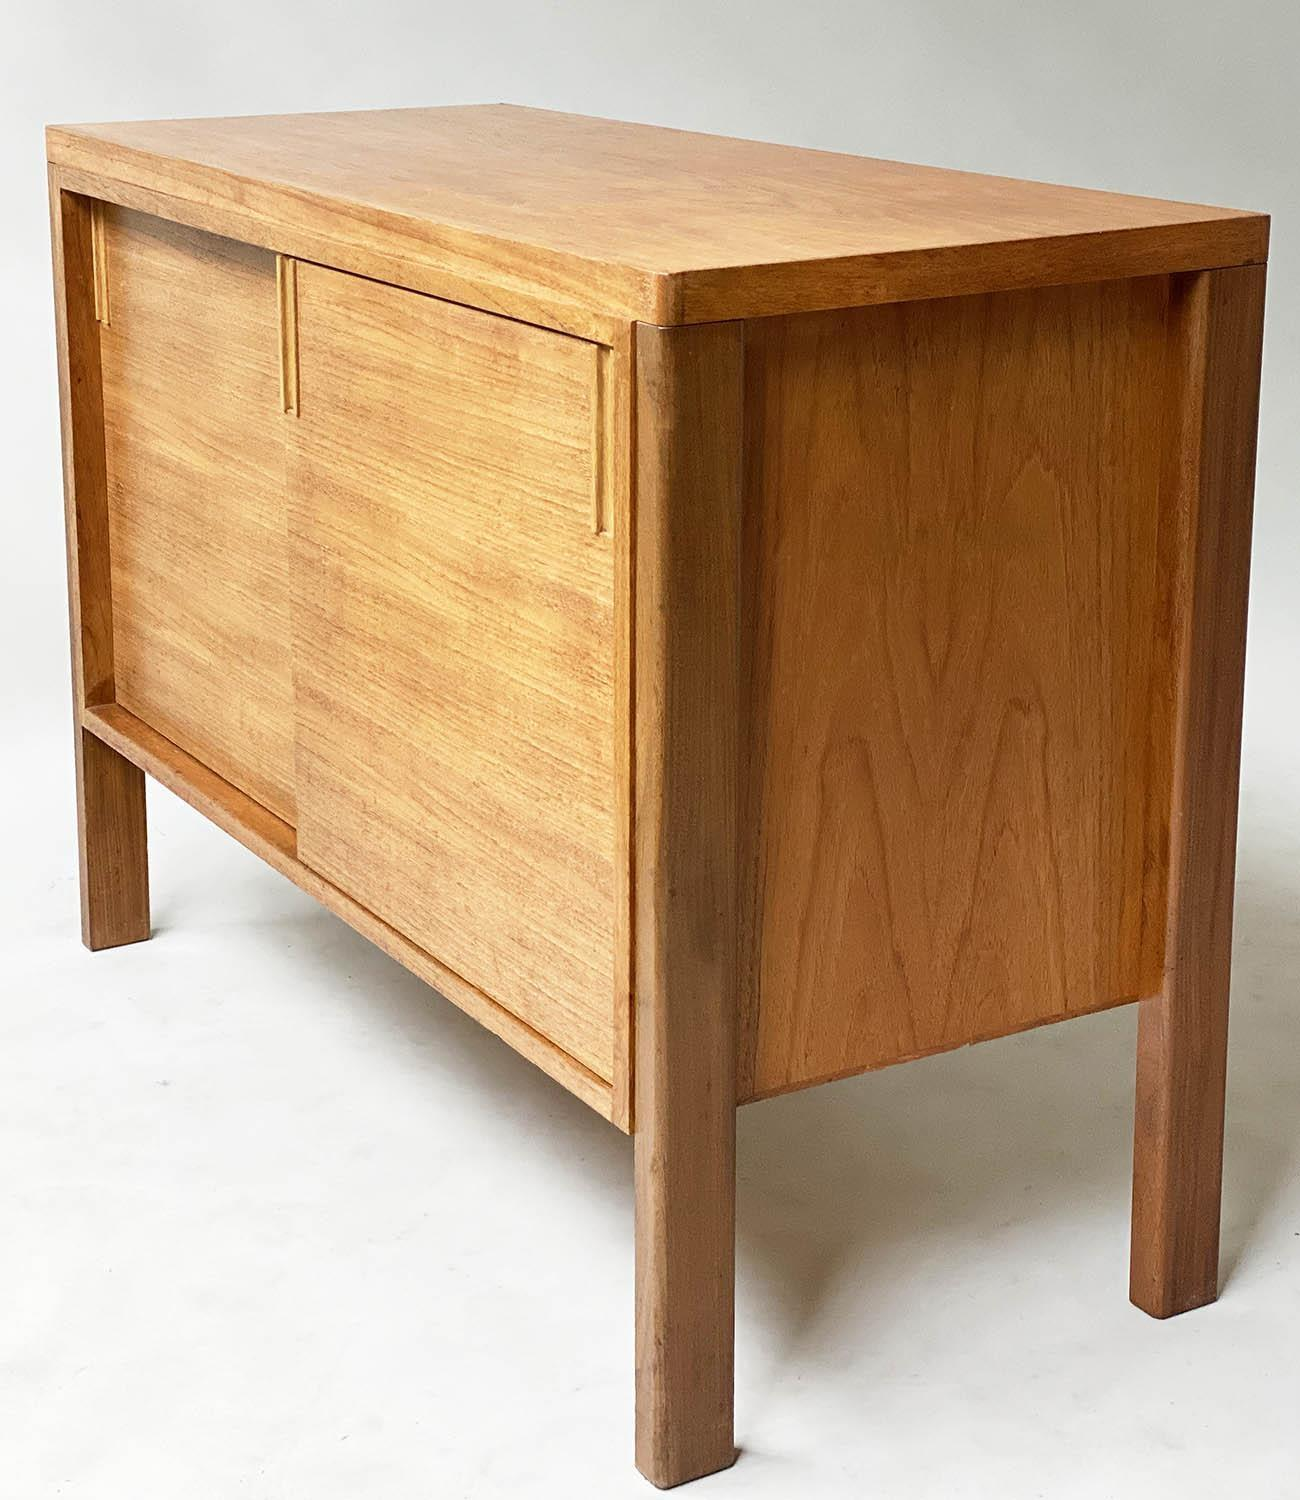 GORDON RUSSELL SIDEBOARD, 1960's walnut with two sliding doors enclosing shelves stamped Gordon - Image 8 of 8